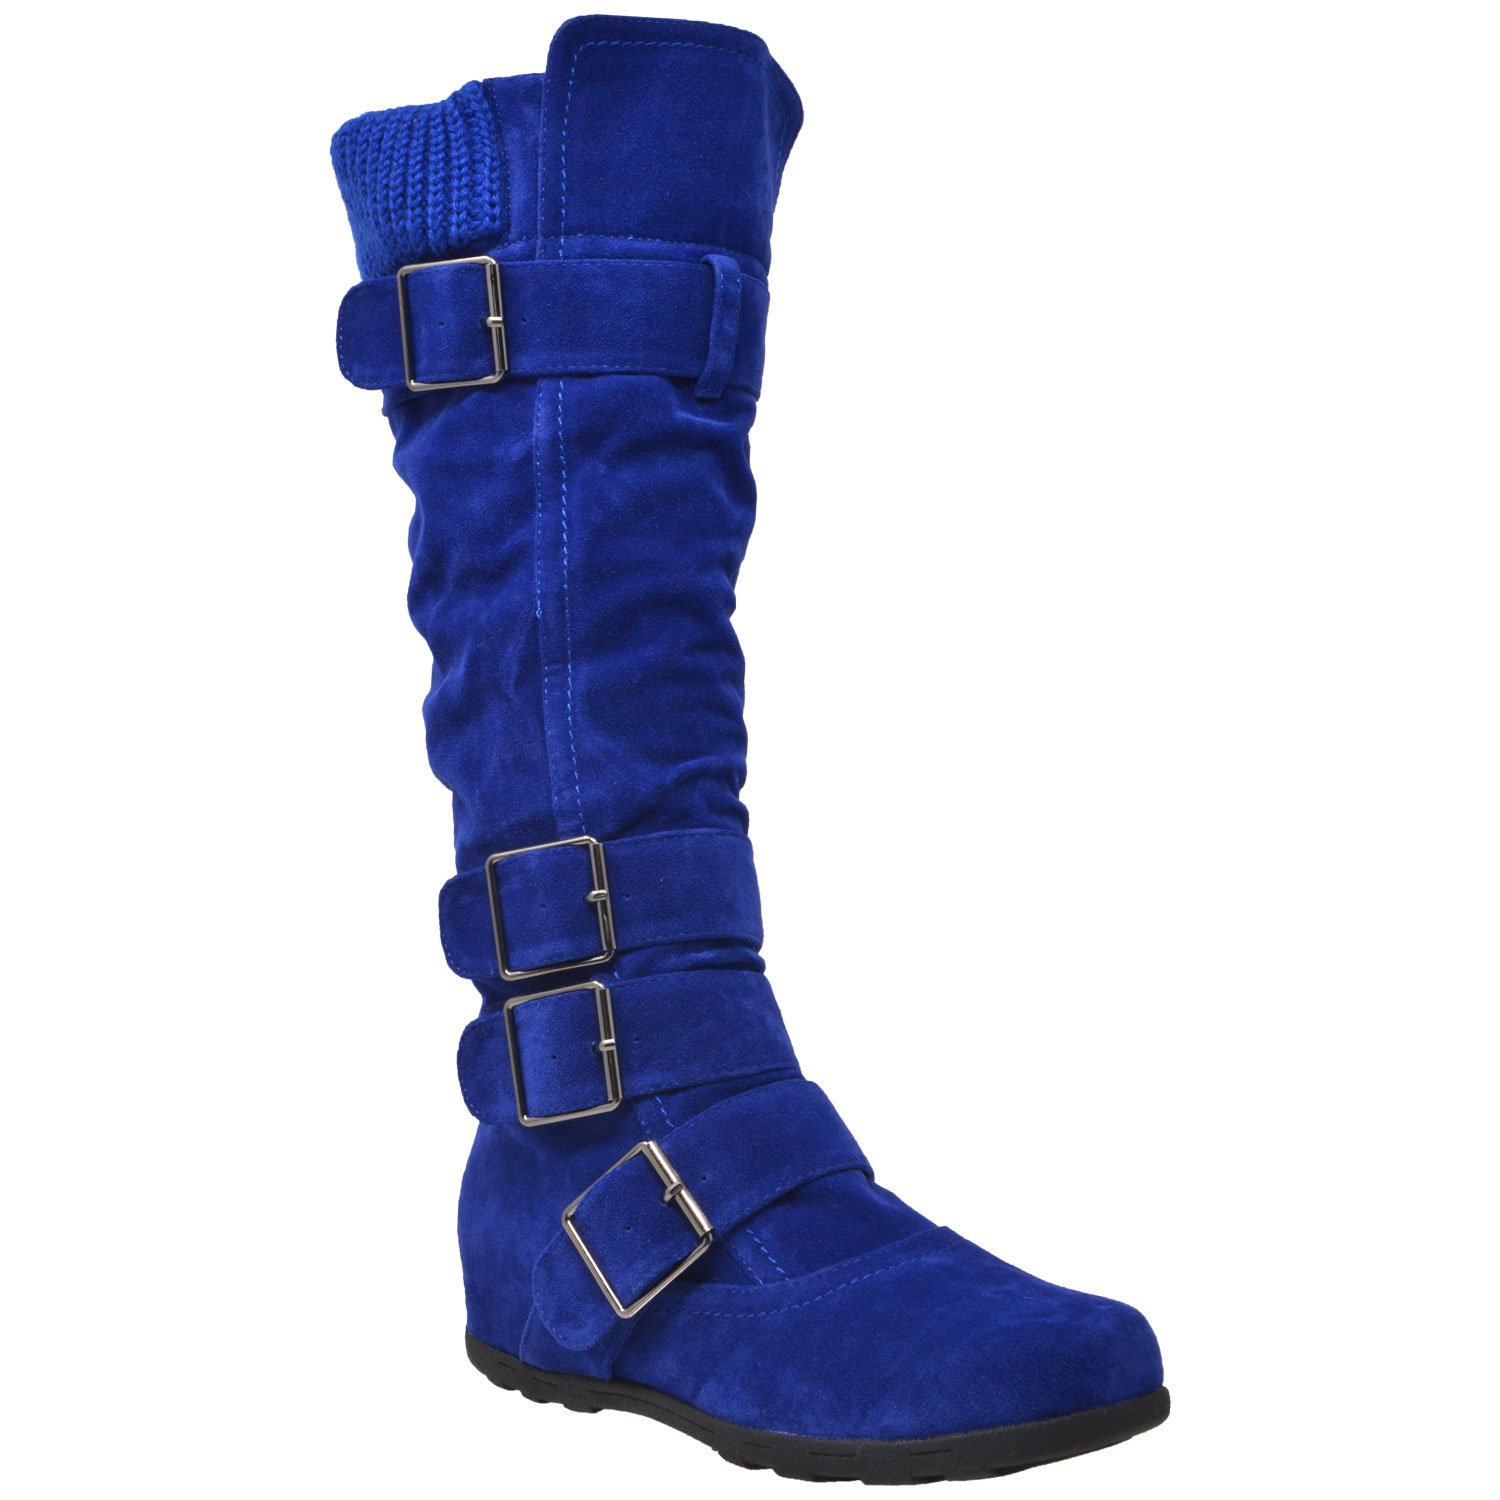 Generation Y Womens Knee High Boots Ruched Suede Knitted Calf Strappy Buckles Accent Royal Blue SZ 10